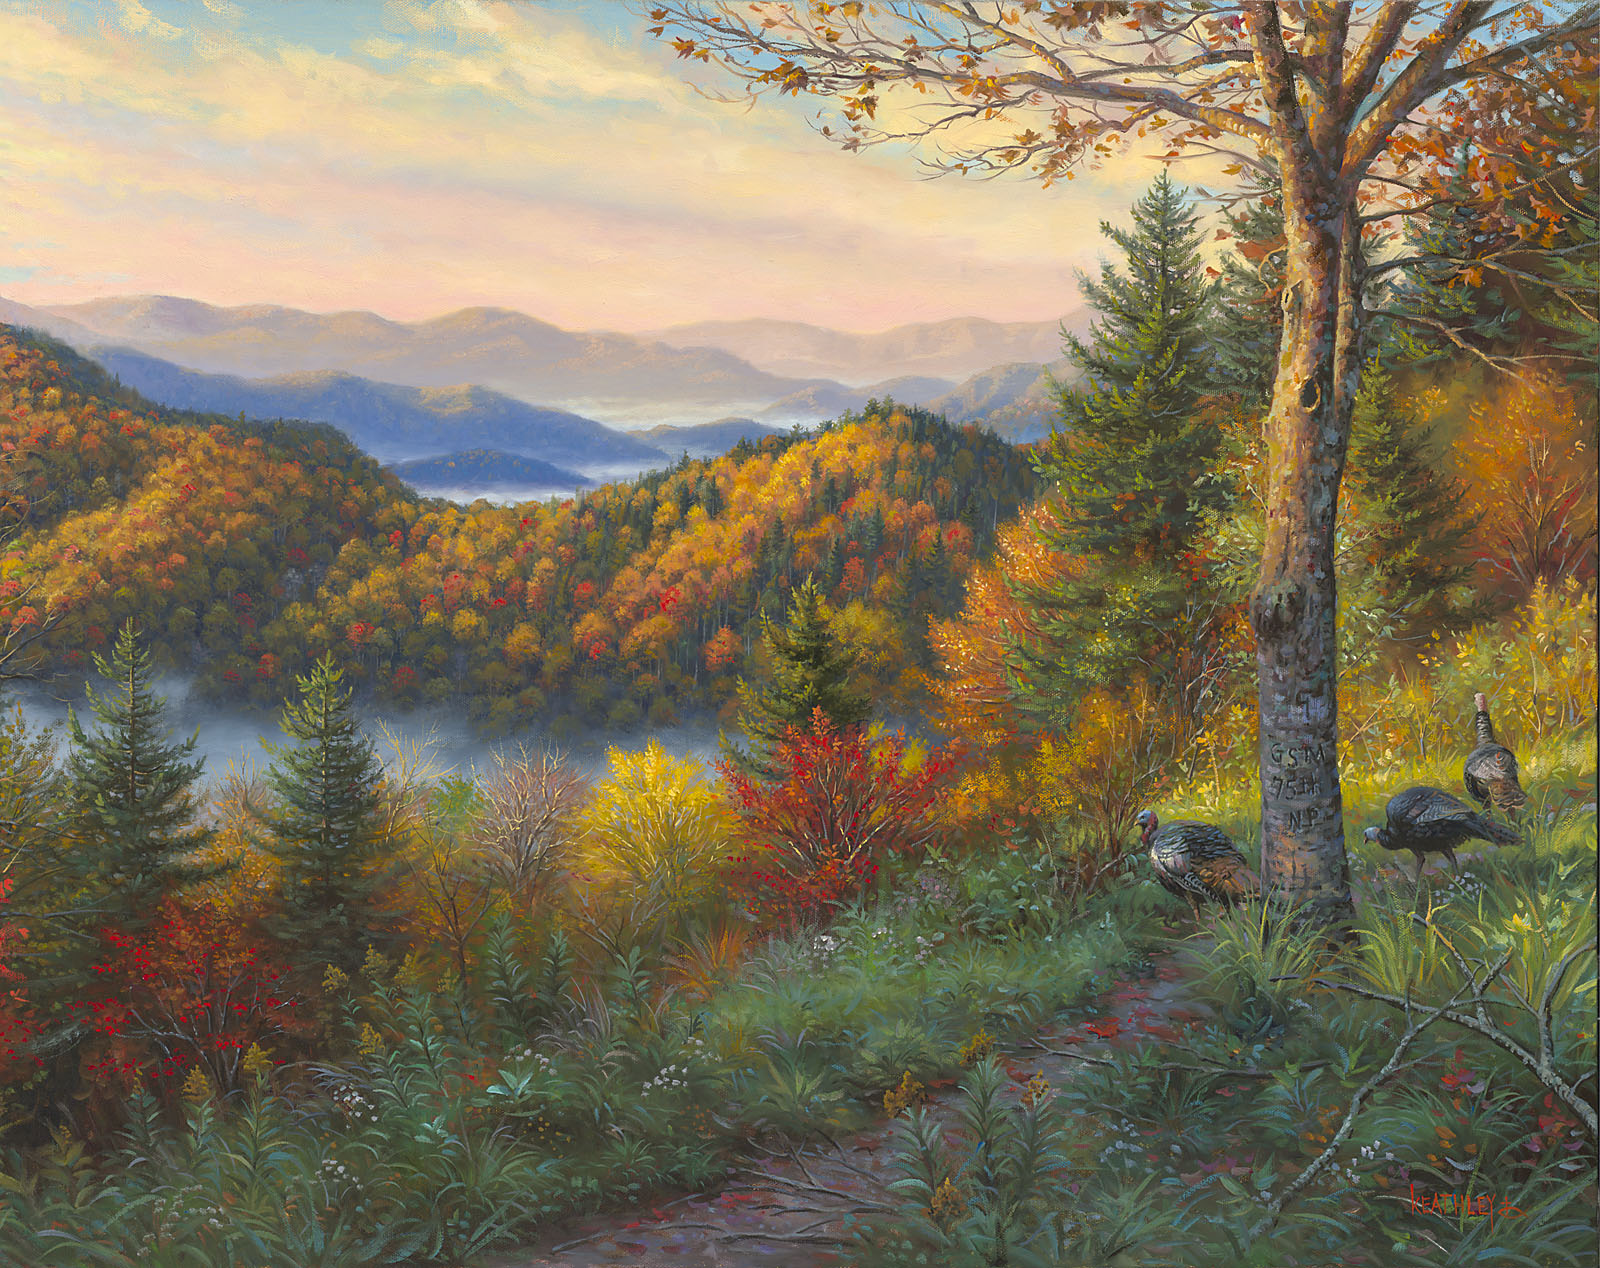 Fall Mountain Scenery Wallpaper Newfound Memories Ii By Mark Keathley High Resolution Image